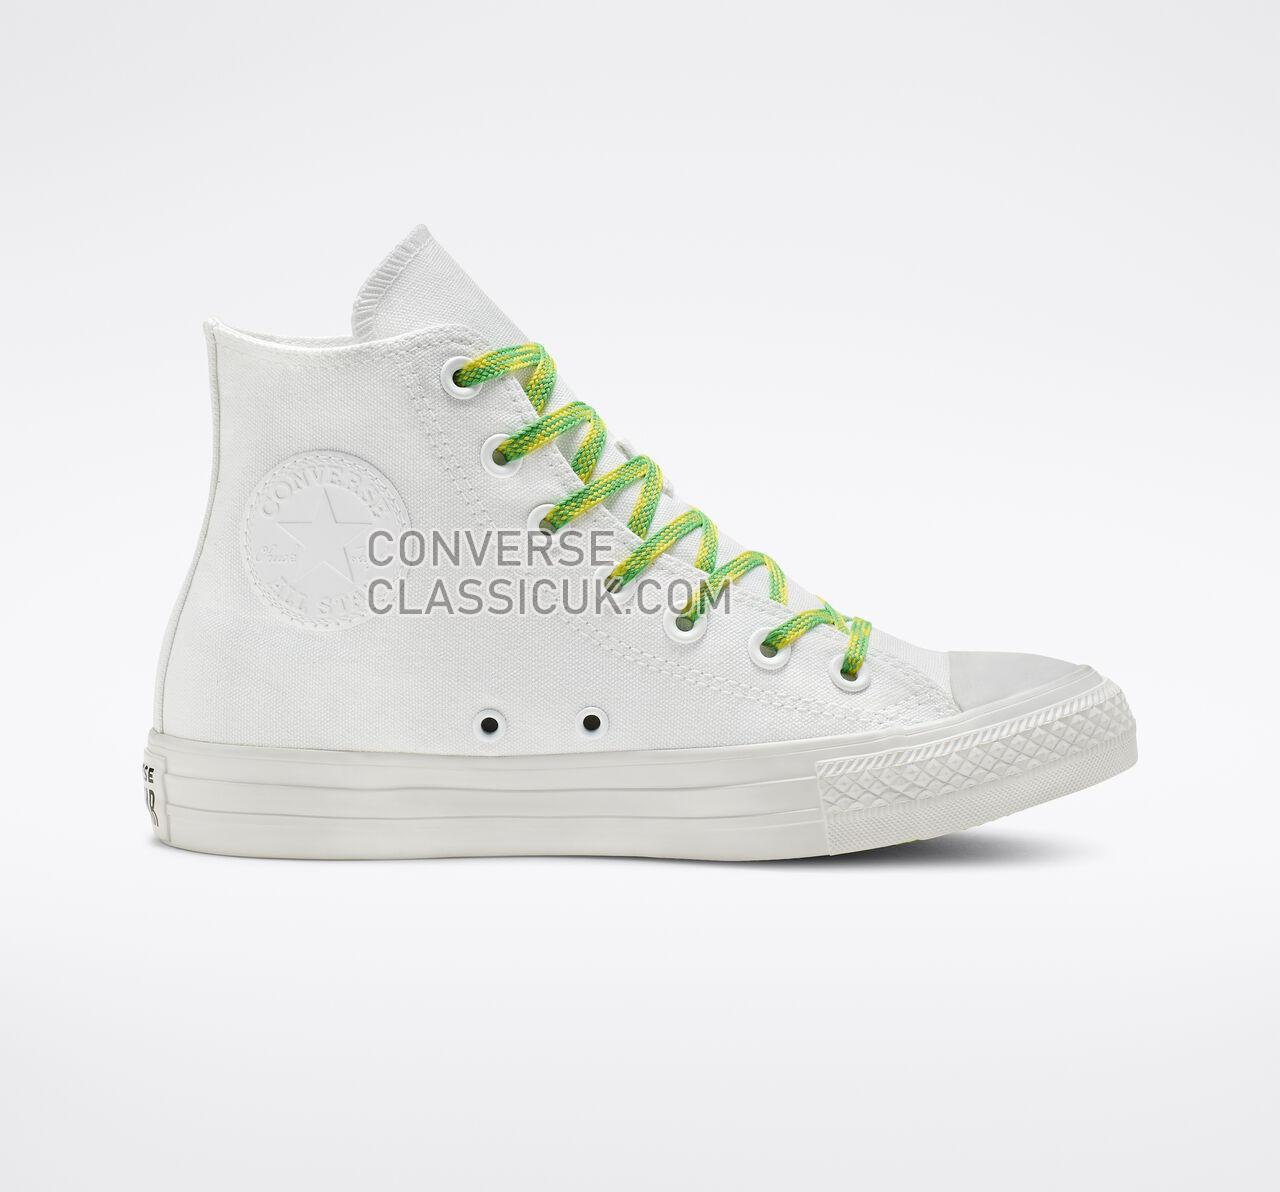 Converse Chuck Taylor All Star Glow Up High Top Womens 564123C White/Acid Green/Fresh Yellow Shoes